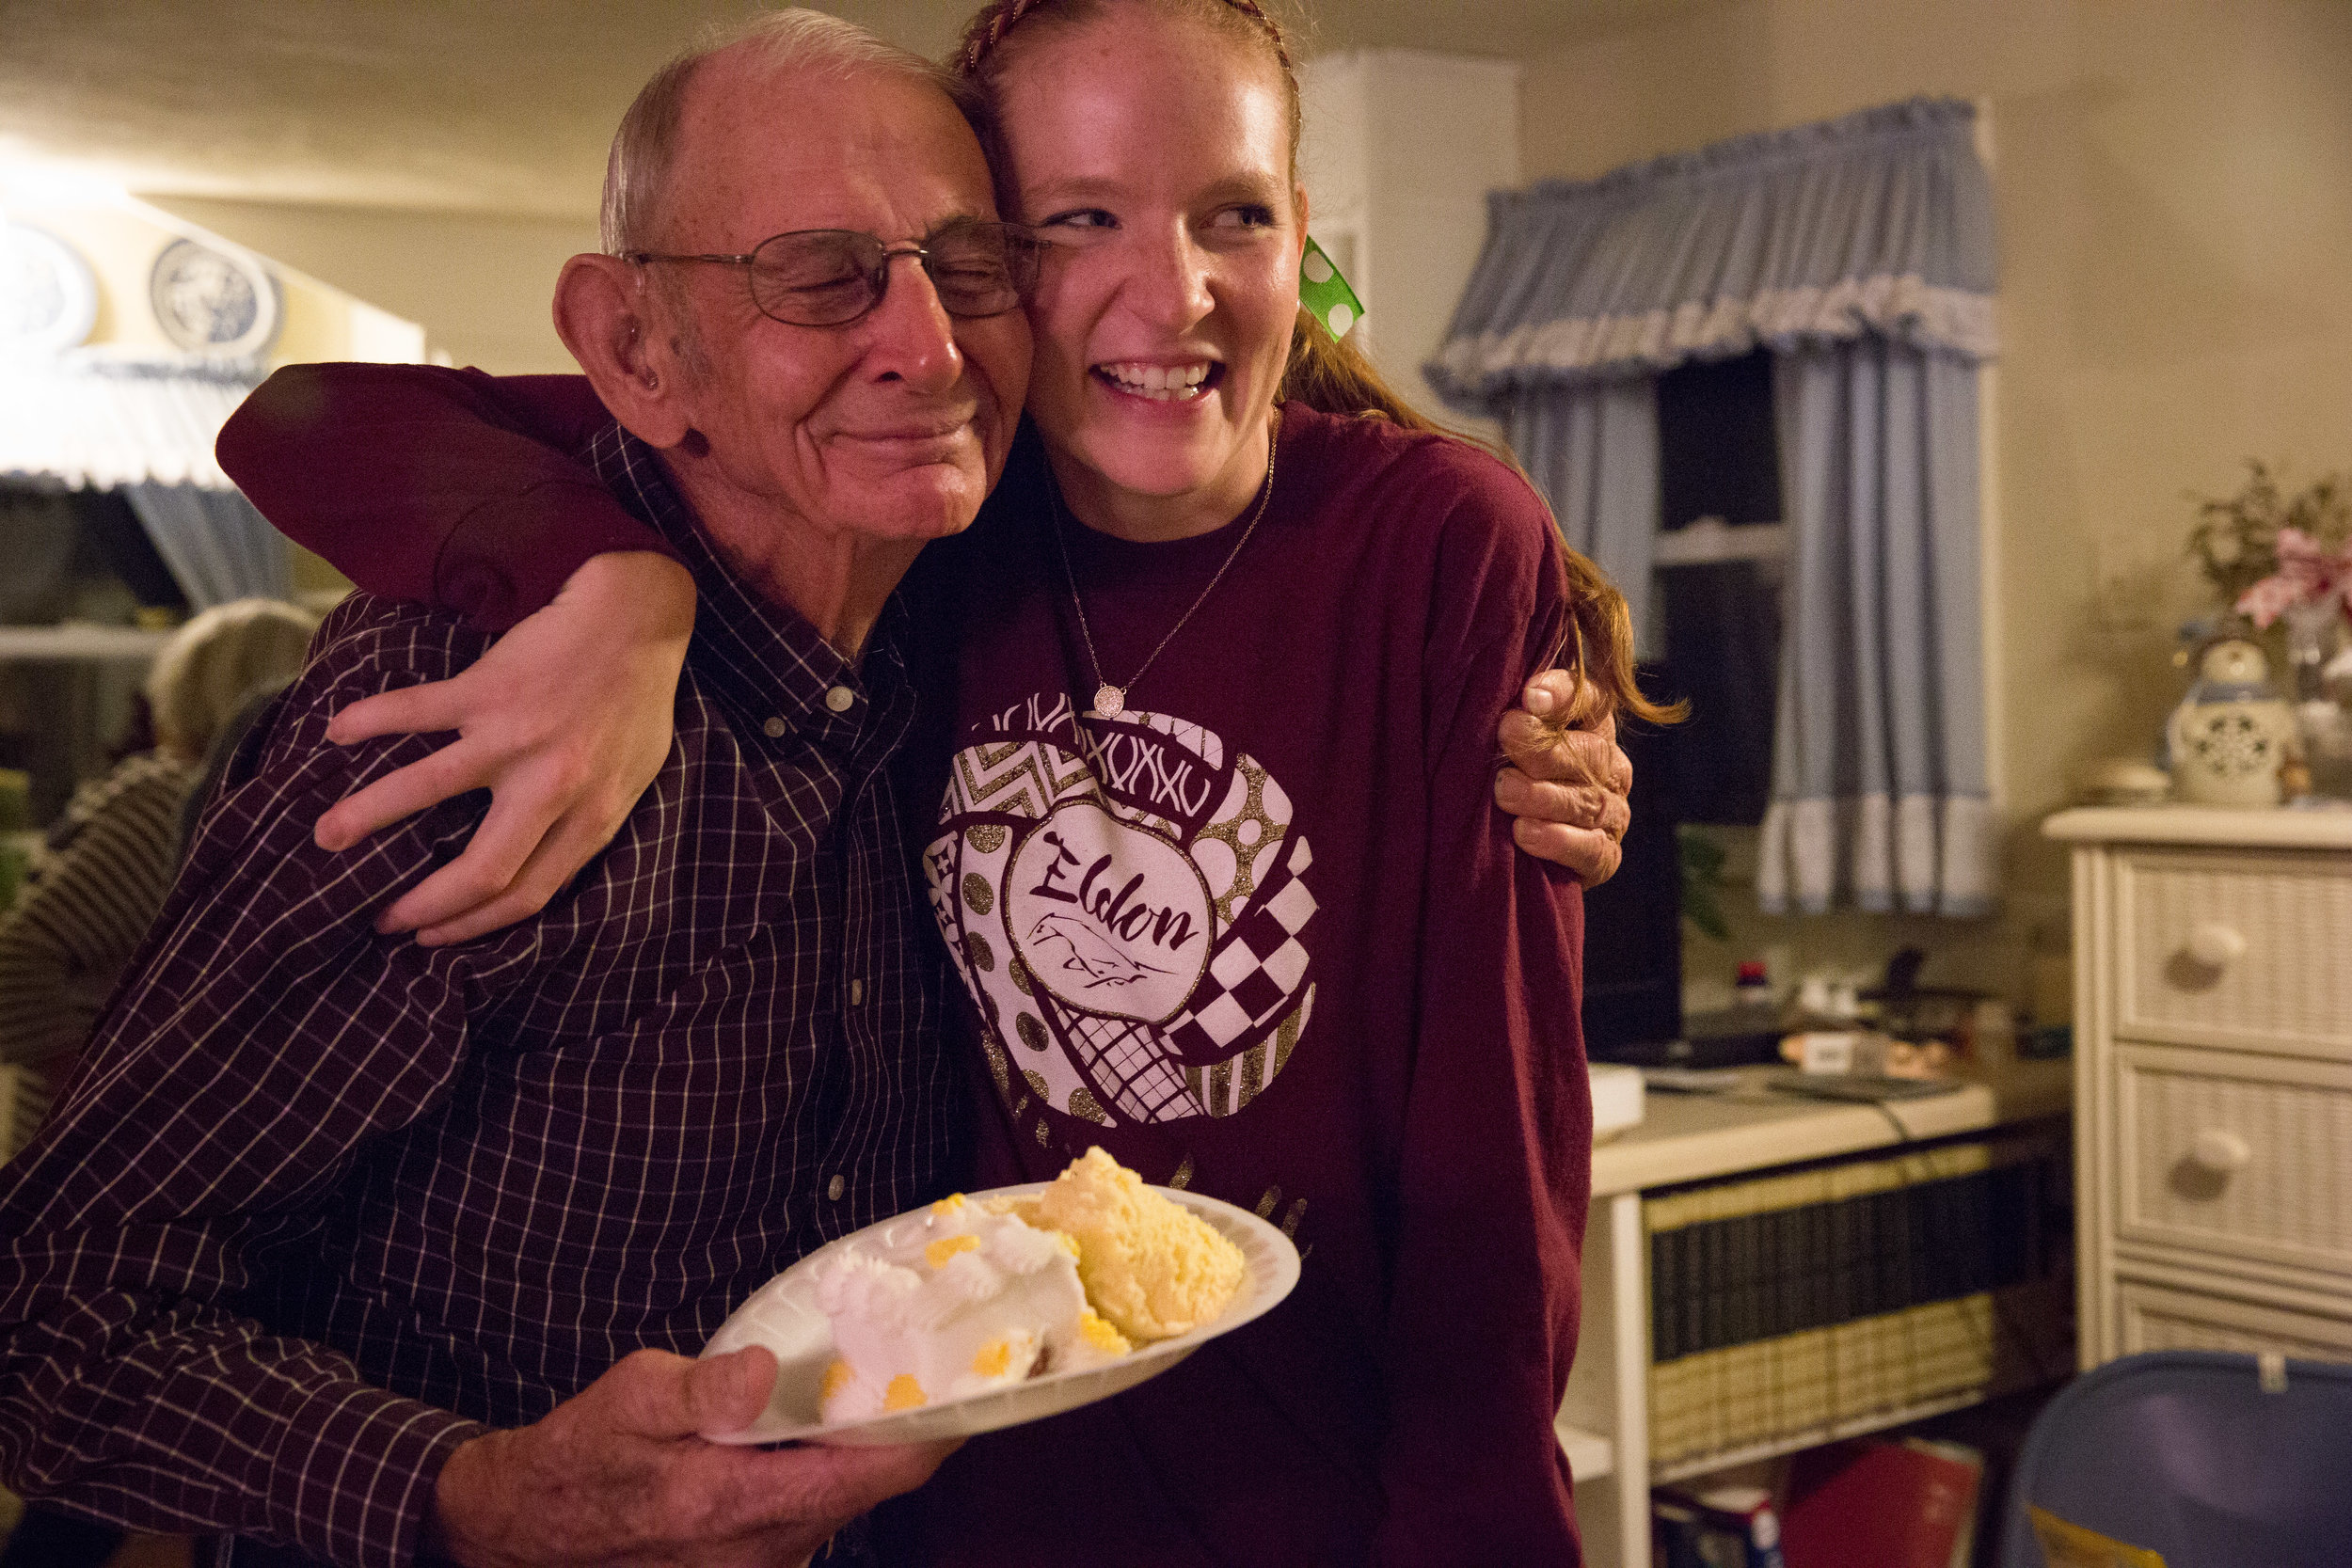 Carl hugs granddaughter Andrea on his 85th Birthday.He doesn't like to make a fuss, but agreed to let the family bring cake and ice cream to his house for an intimate celebration.